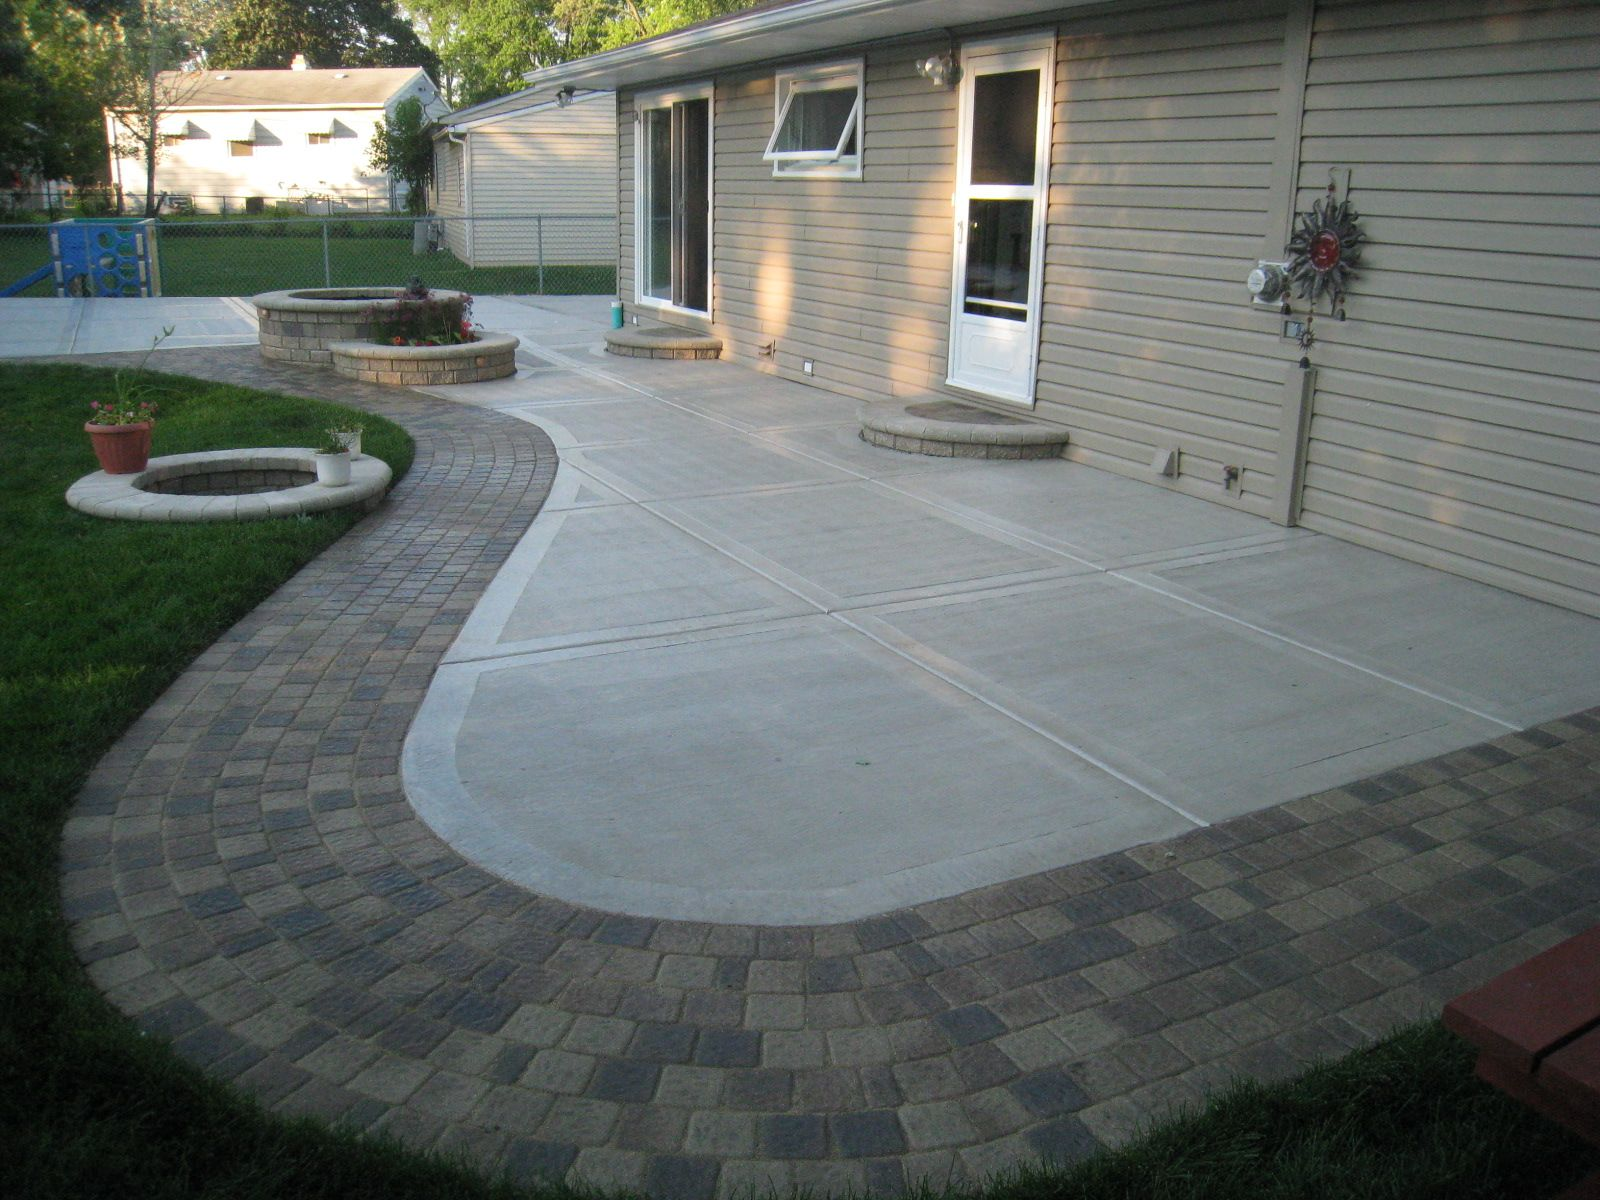 Back Yard Concrete Patio Ideas Concrete Patio California finish and Unilock  Old Greenwich Sierra.I like the concrete with brick edging.